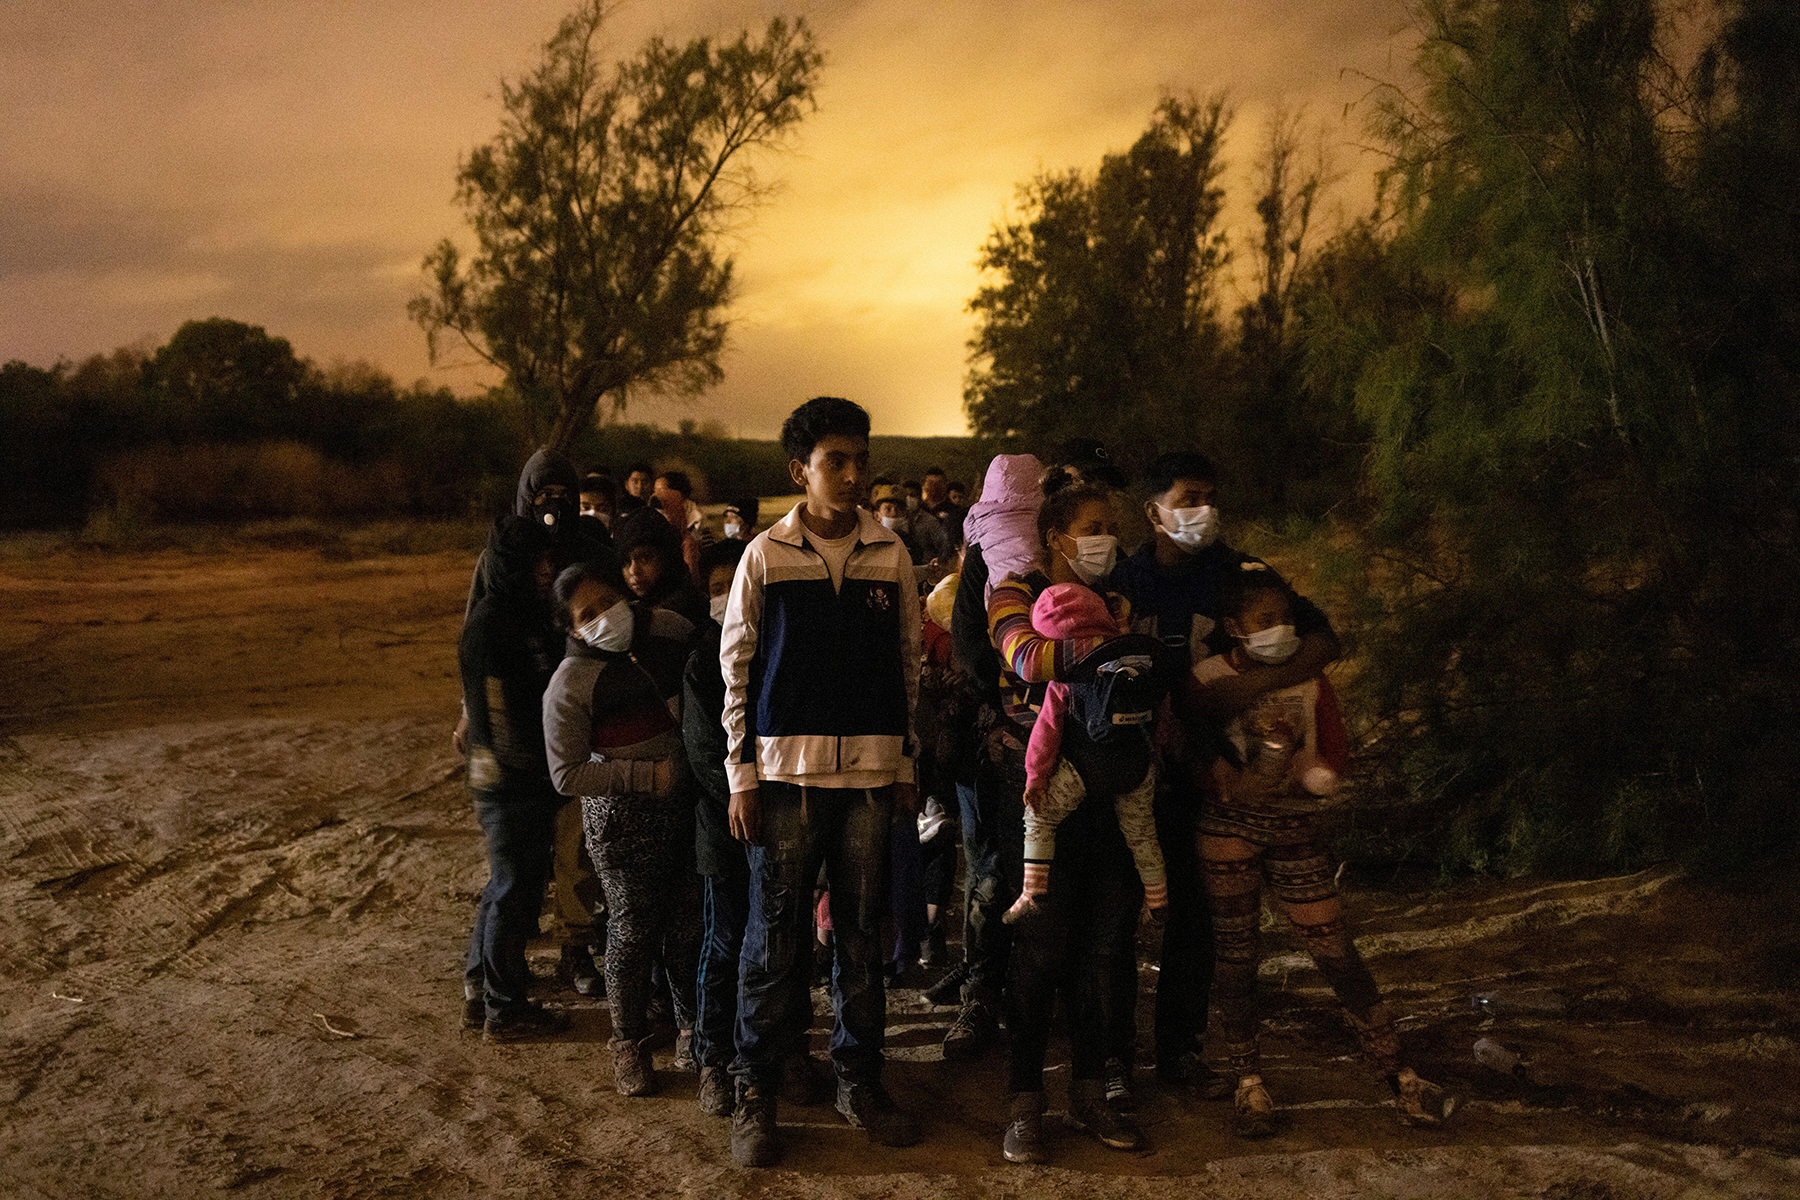 2FNA8A7 Asylum seeking migrants from Central America line up to be escorted to the main road by the Texas Army National Guard after crossing the Rio Grande river into the United States from Mexico, in Roma, Texas, U.S., May 15, 2021. REUTERS/Adrees Latif